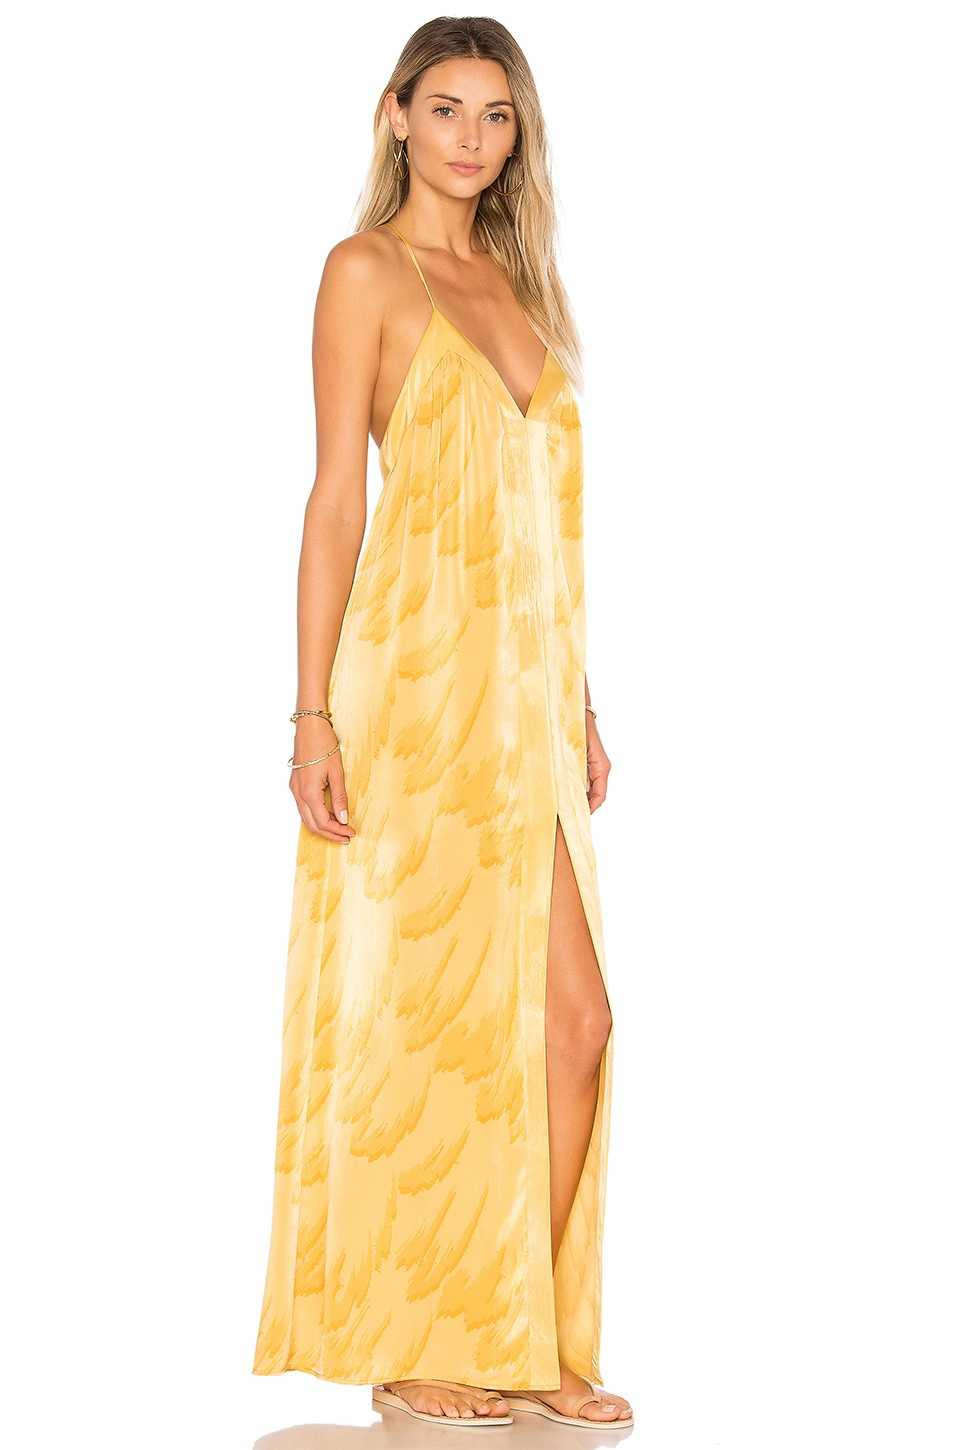 House of Harlow 1960 x REVOLVE Brynn Maxi in Feather